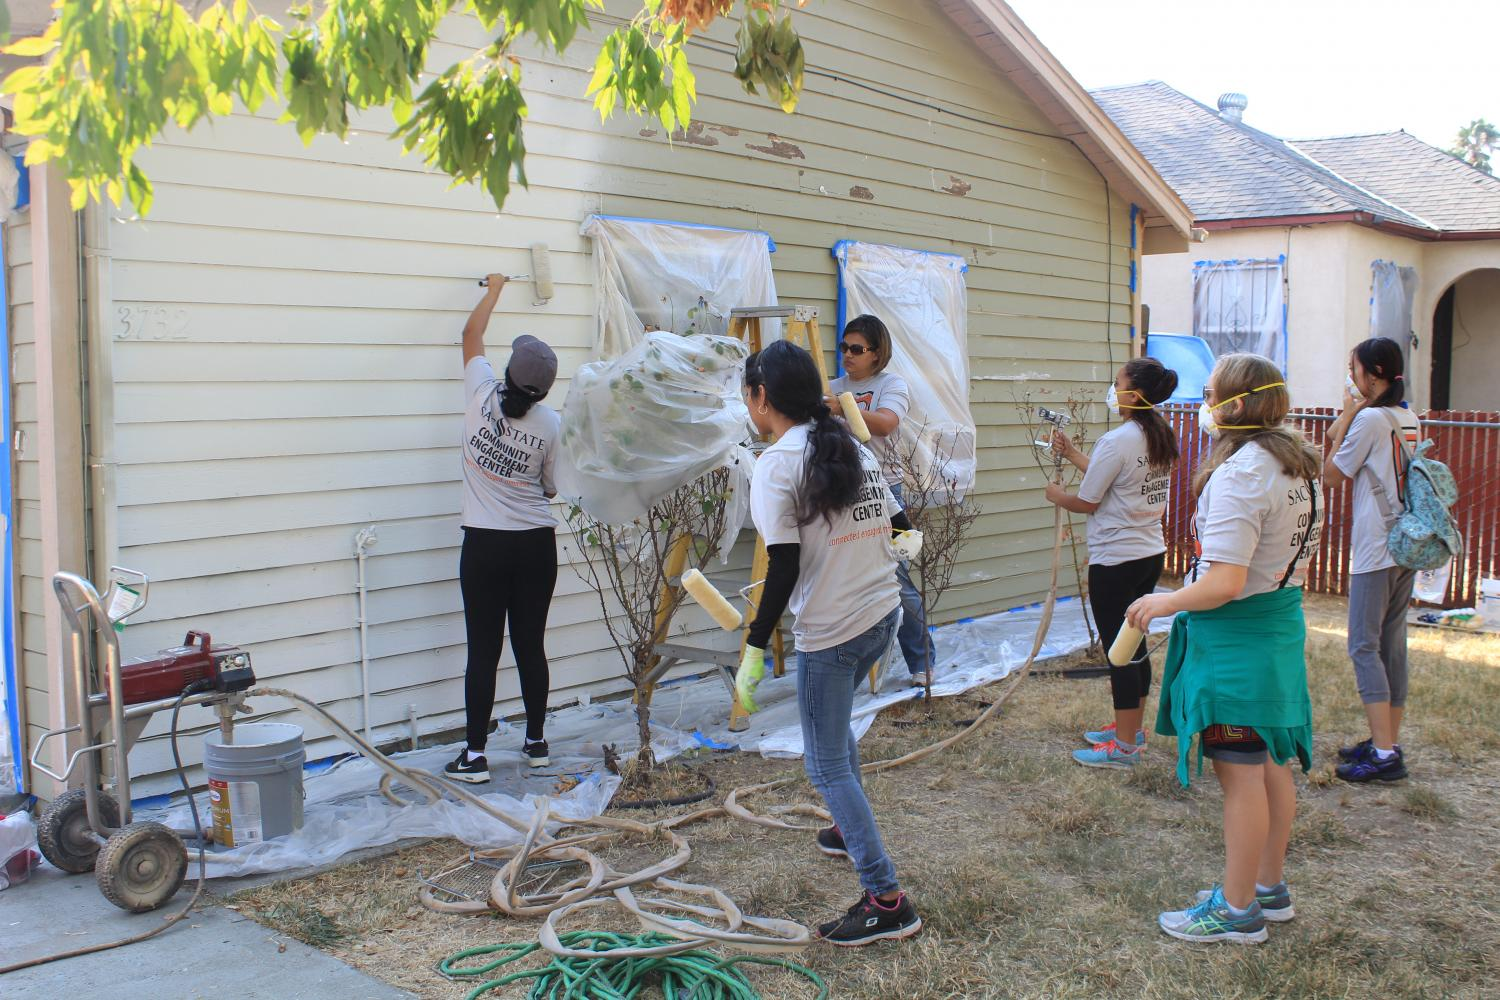 Sacramento State students from the Community Engagement Center paint houses at the 20th annual Paint The Town event in Del Paso Heights Saturday.